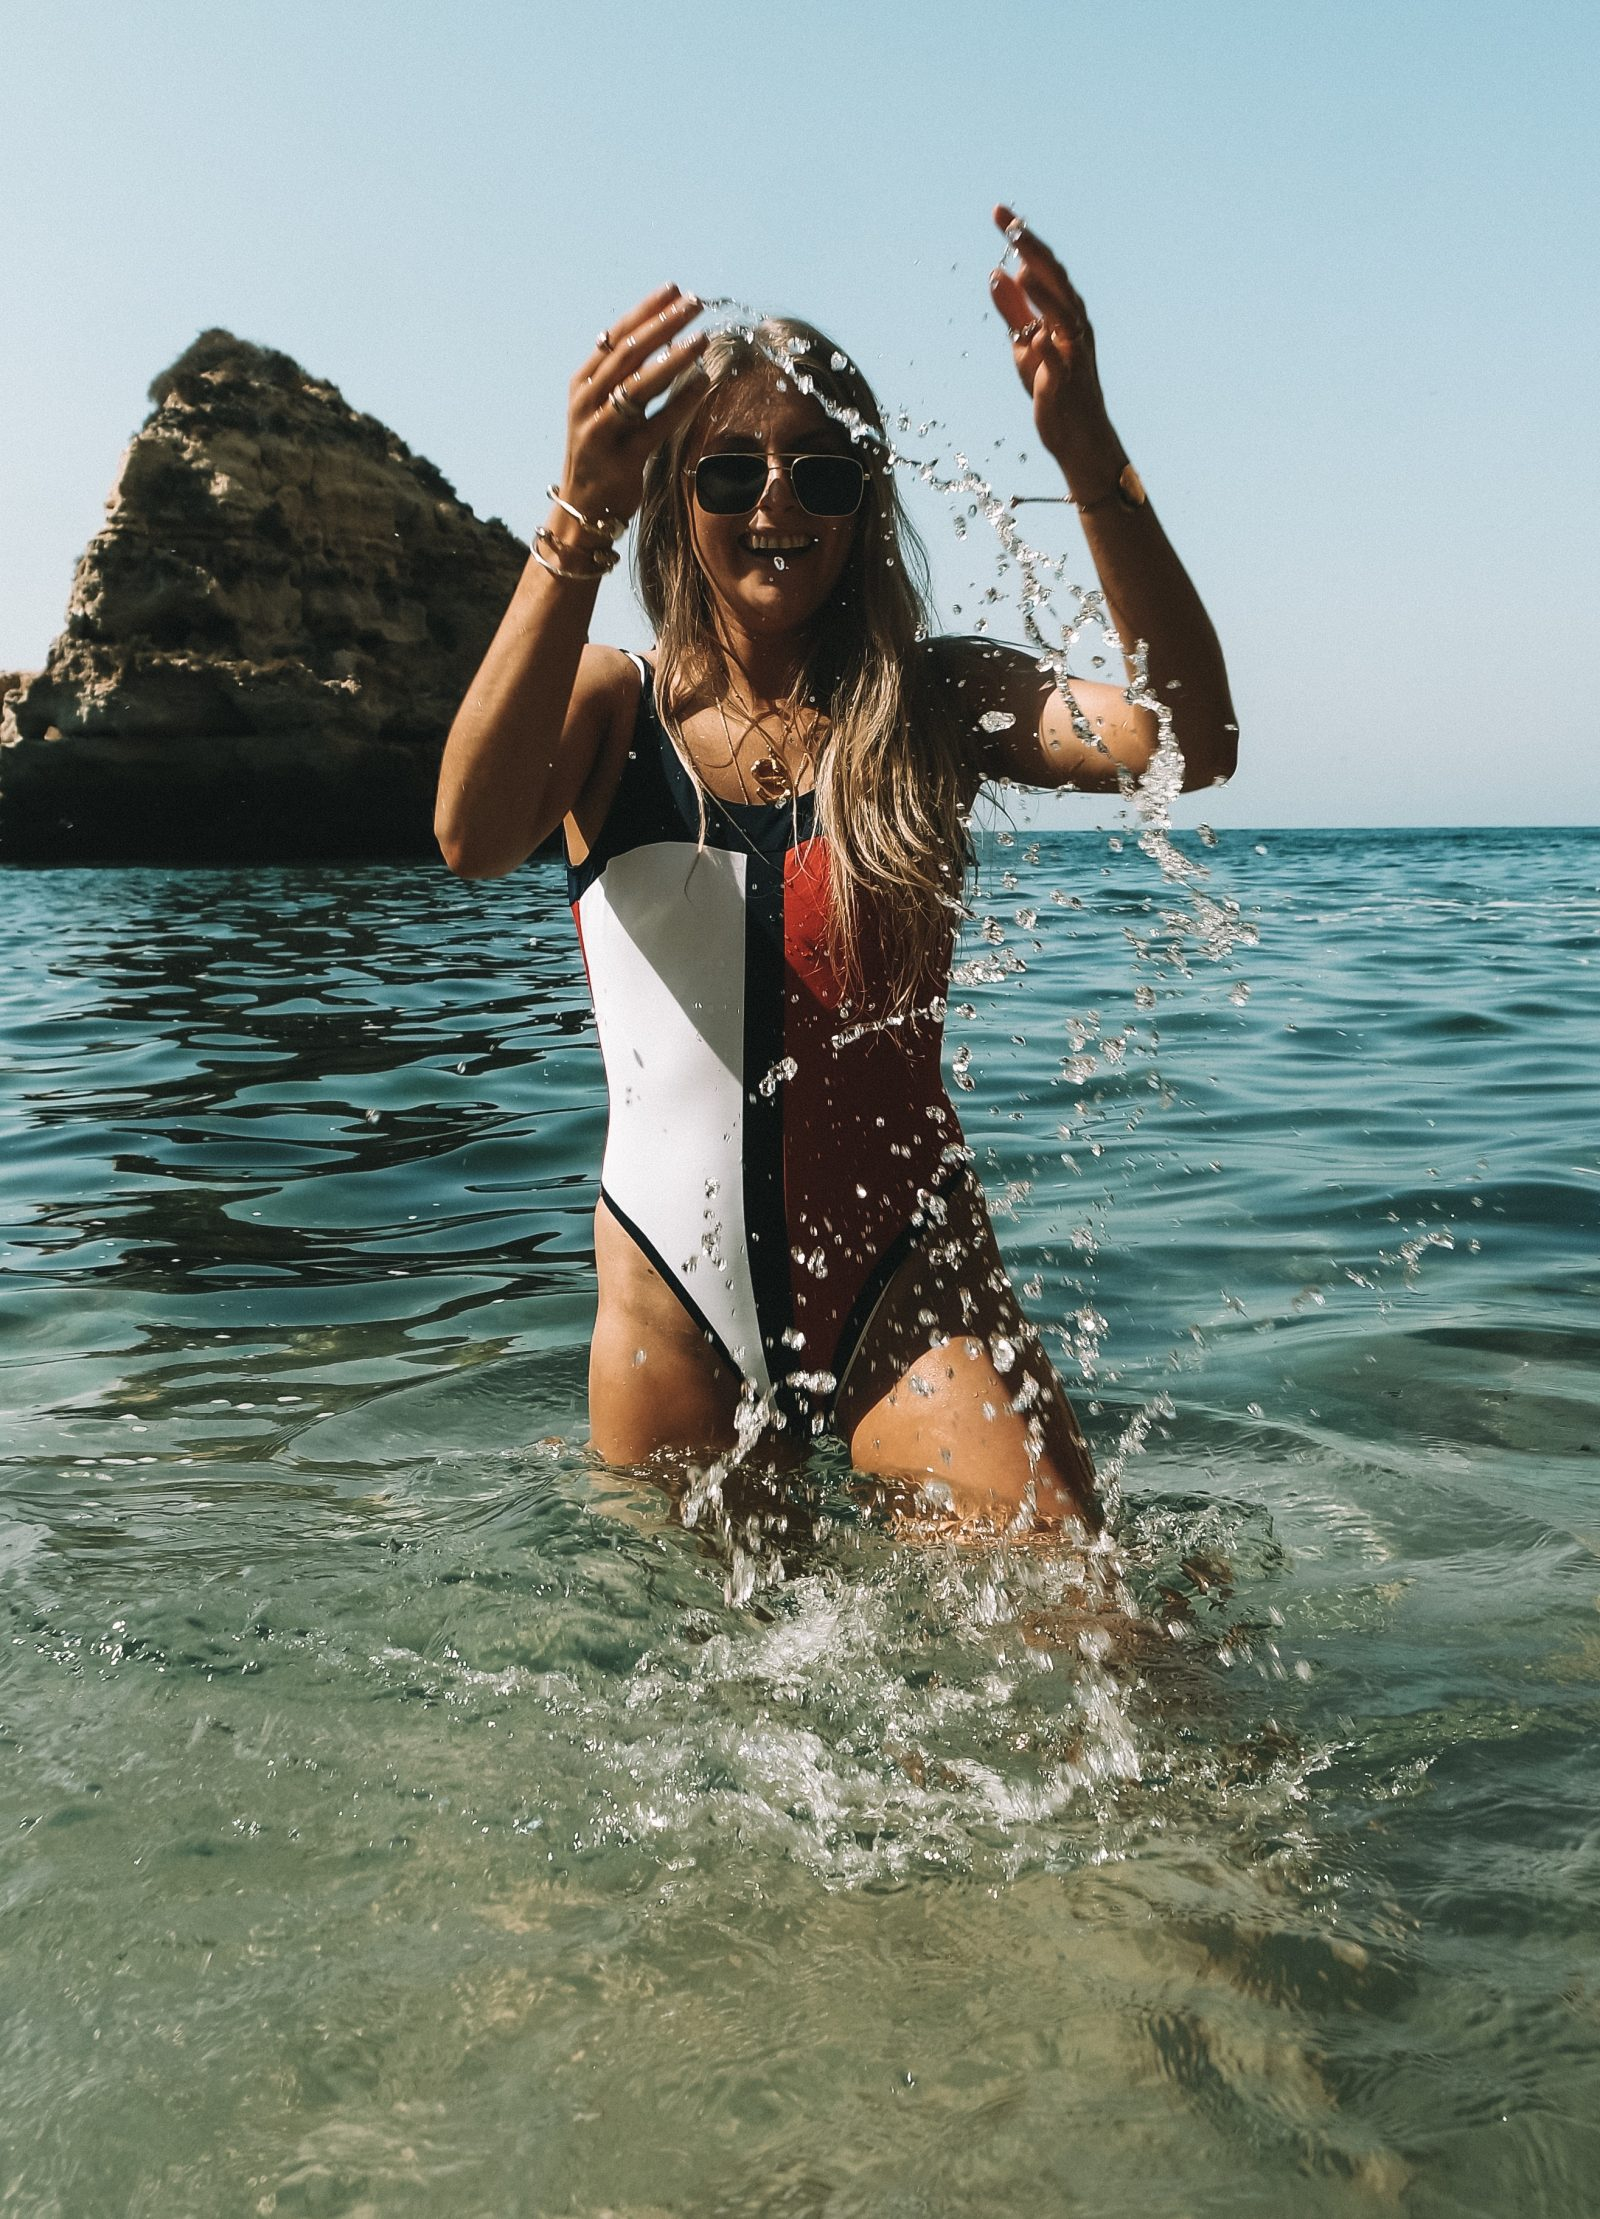 Tommy Hilfiger Swimsuit - Tommy Girls